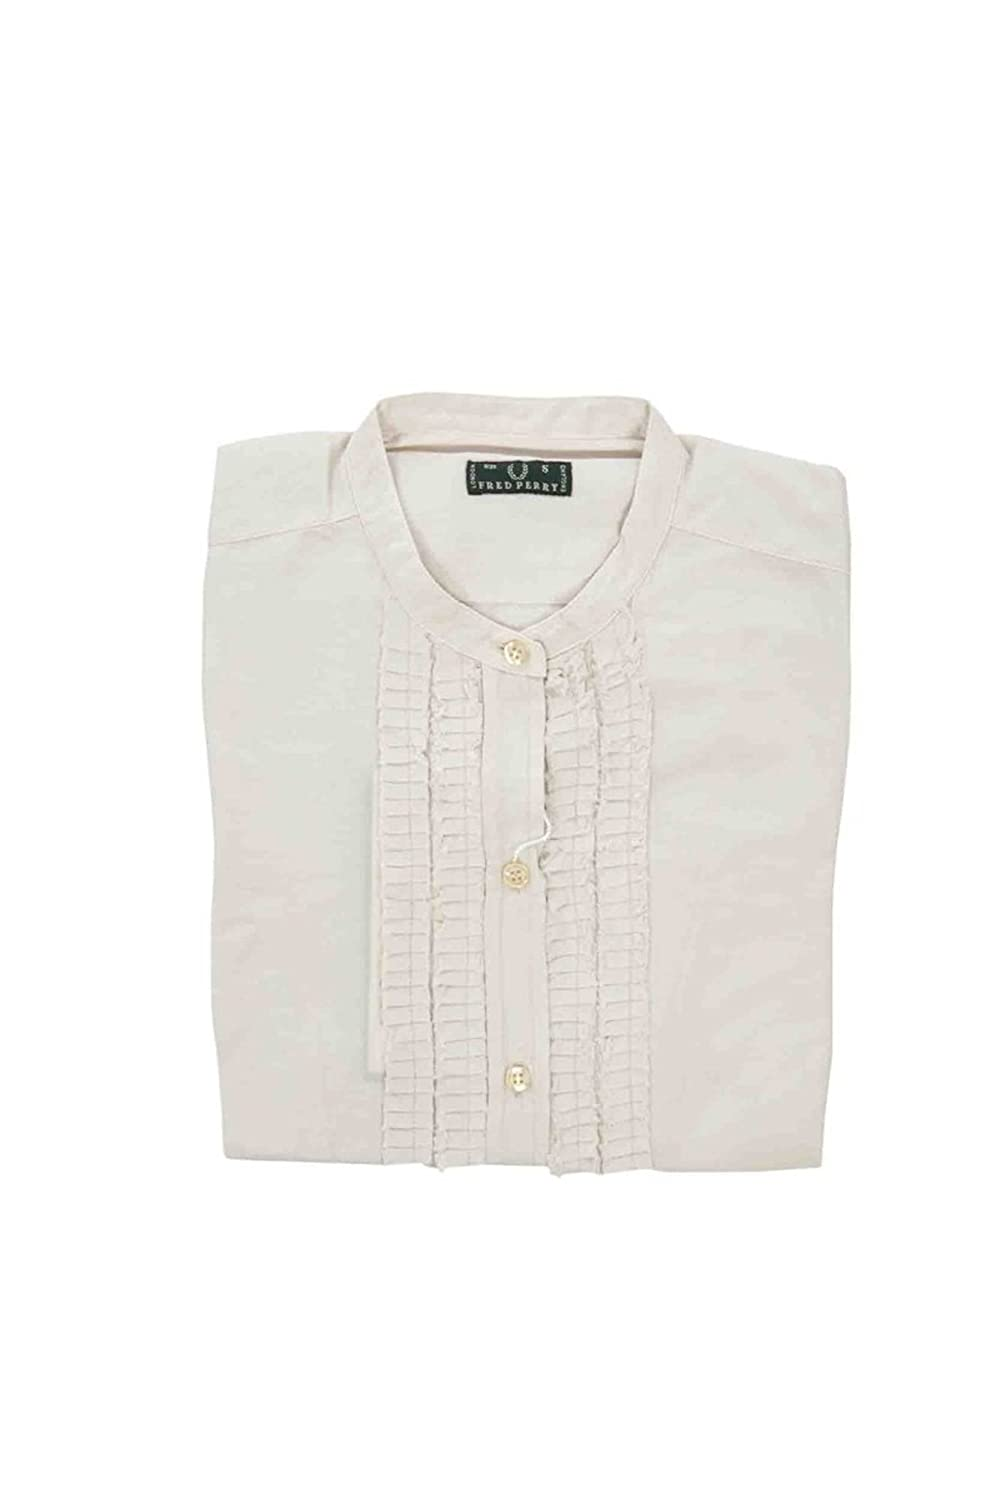 Fred perry shirt long sleeves women beige